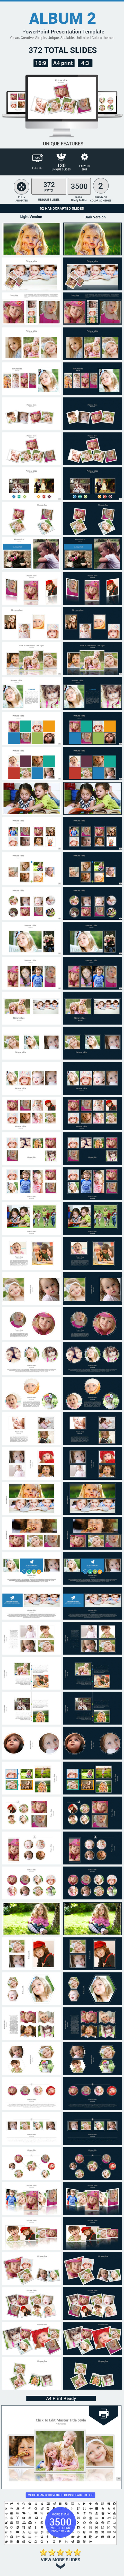 Album 2 PowerPoint Presentation Template - PowerPoint Templates Presentation Templates